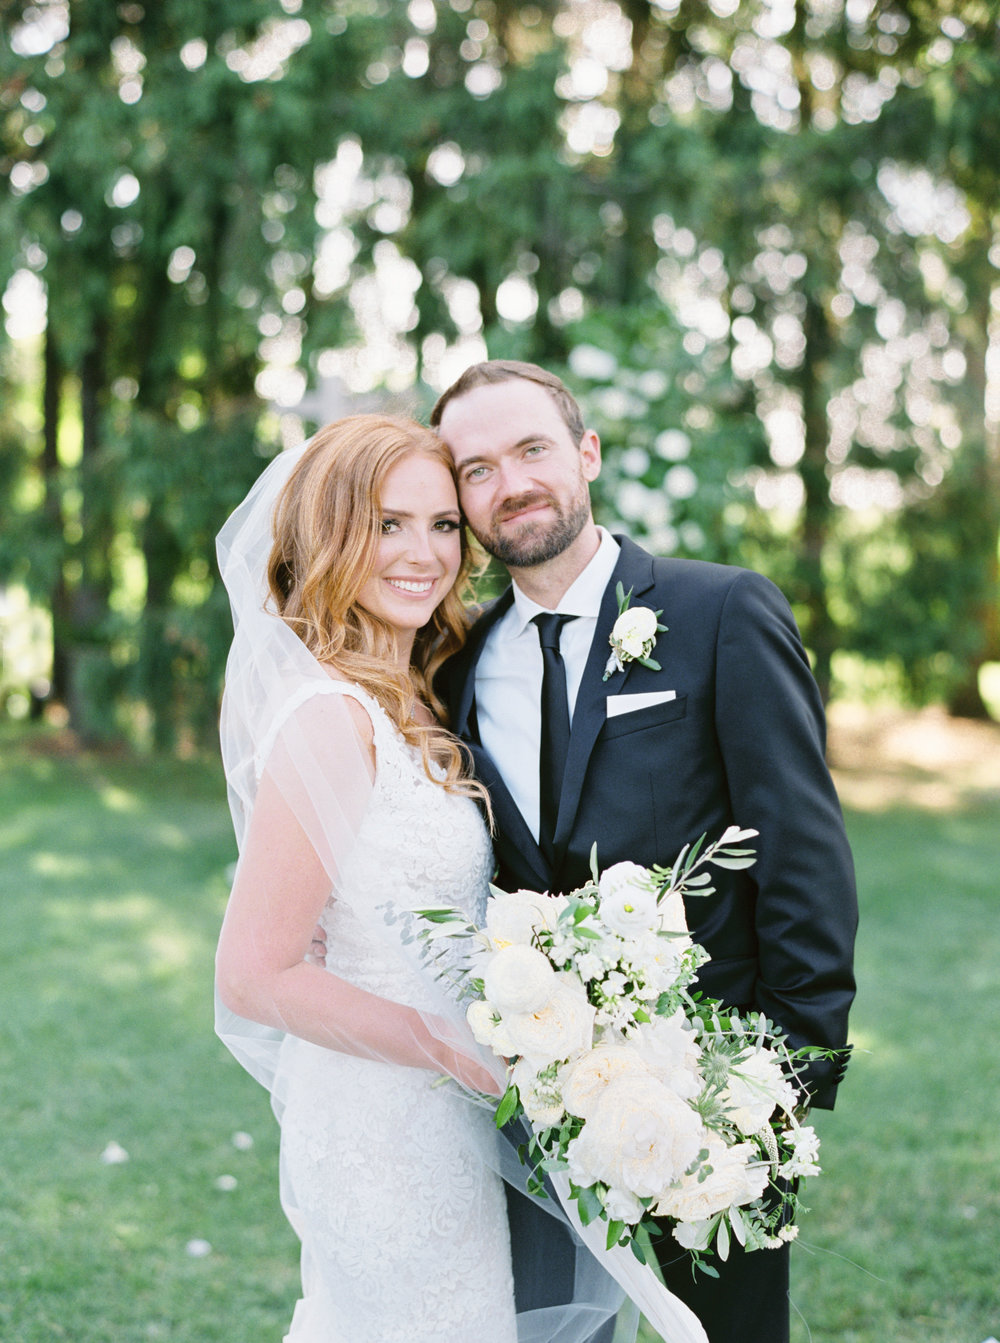 cambium-farms-kurtz-wedding-toronto-photographer-langdon-film-richelle-hunter-cori-joey-previews-19.jpg